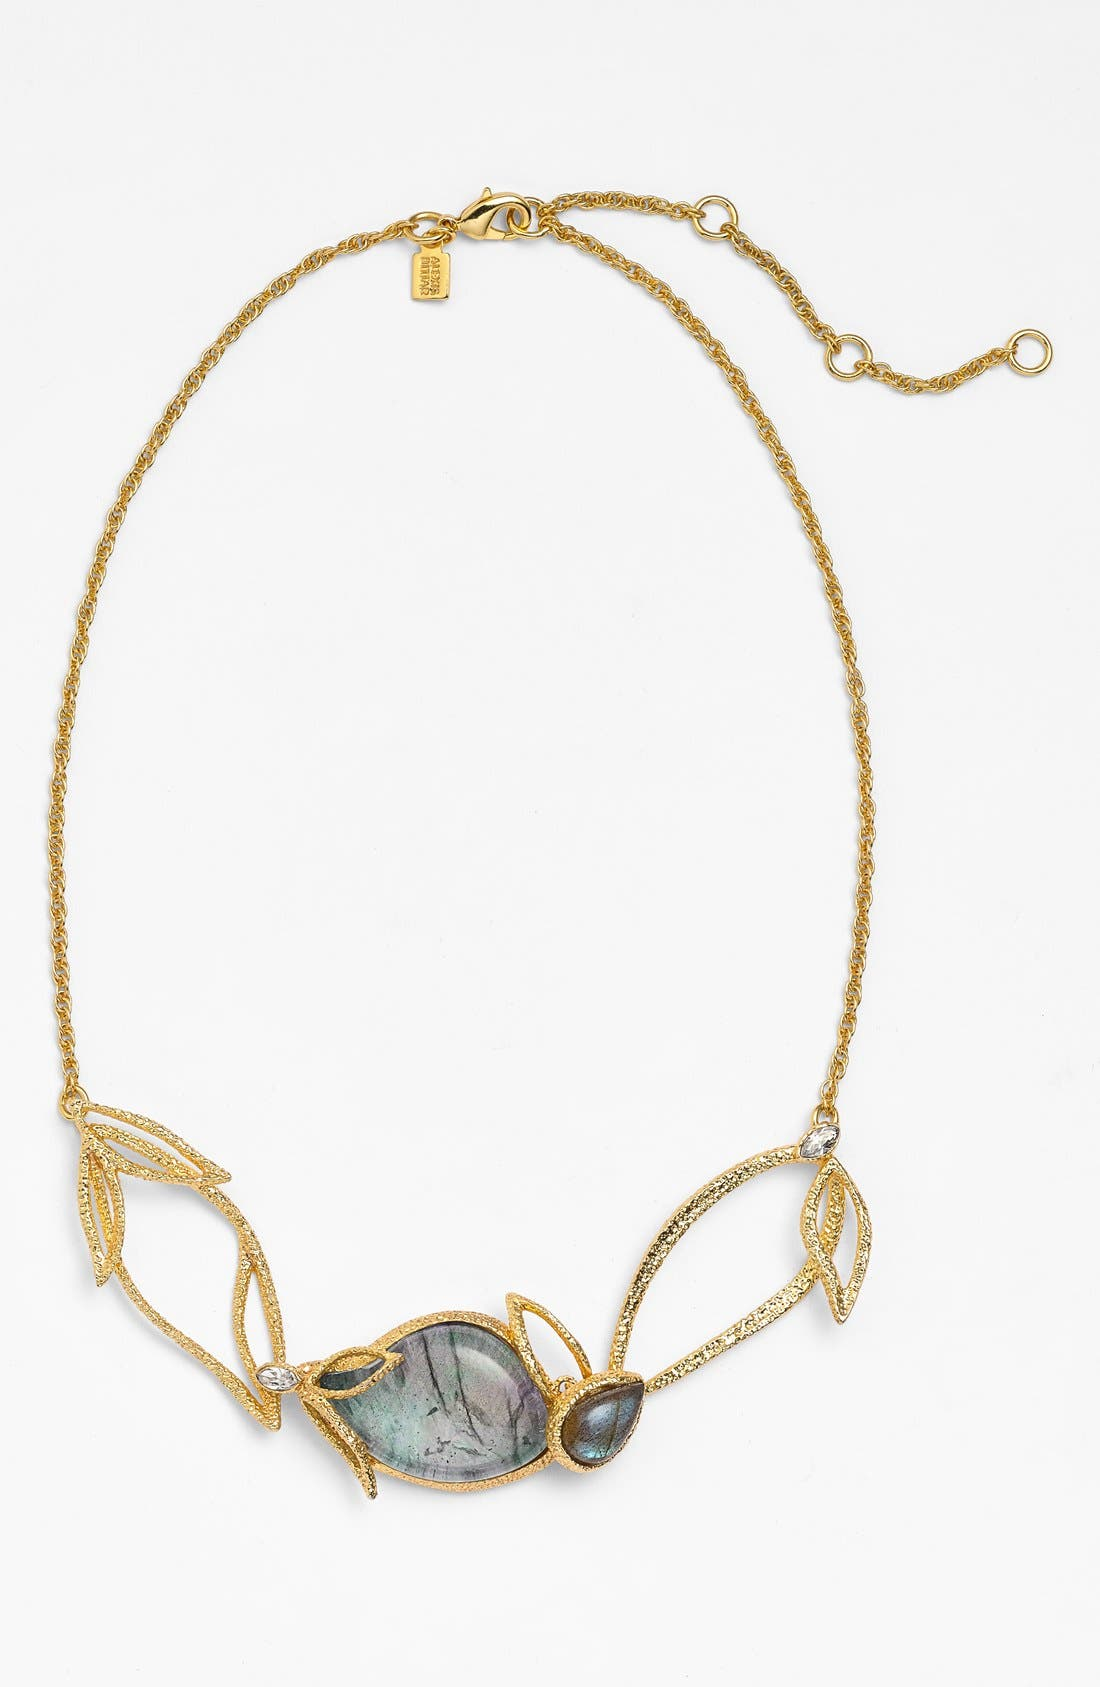 Main Image - Alexis Bittar 'Elements' Bib Necklace (Nordstrom Exclusive)